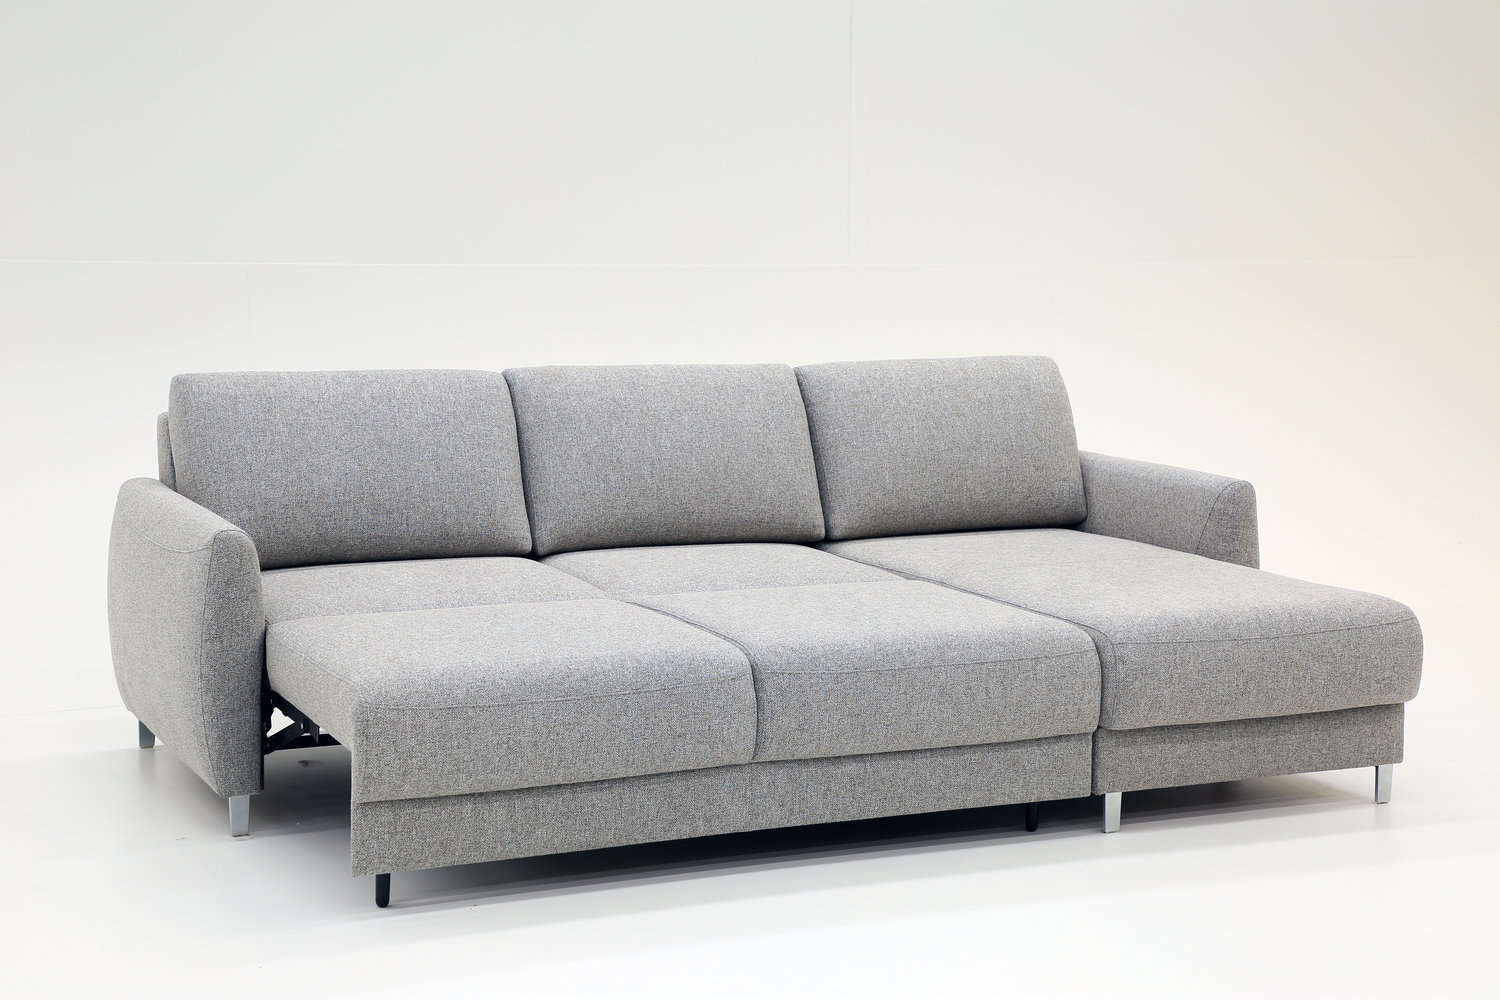 Delta Sectional Storage Sofa Bed M